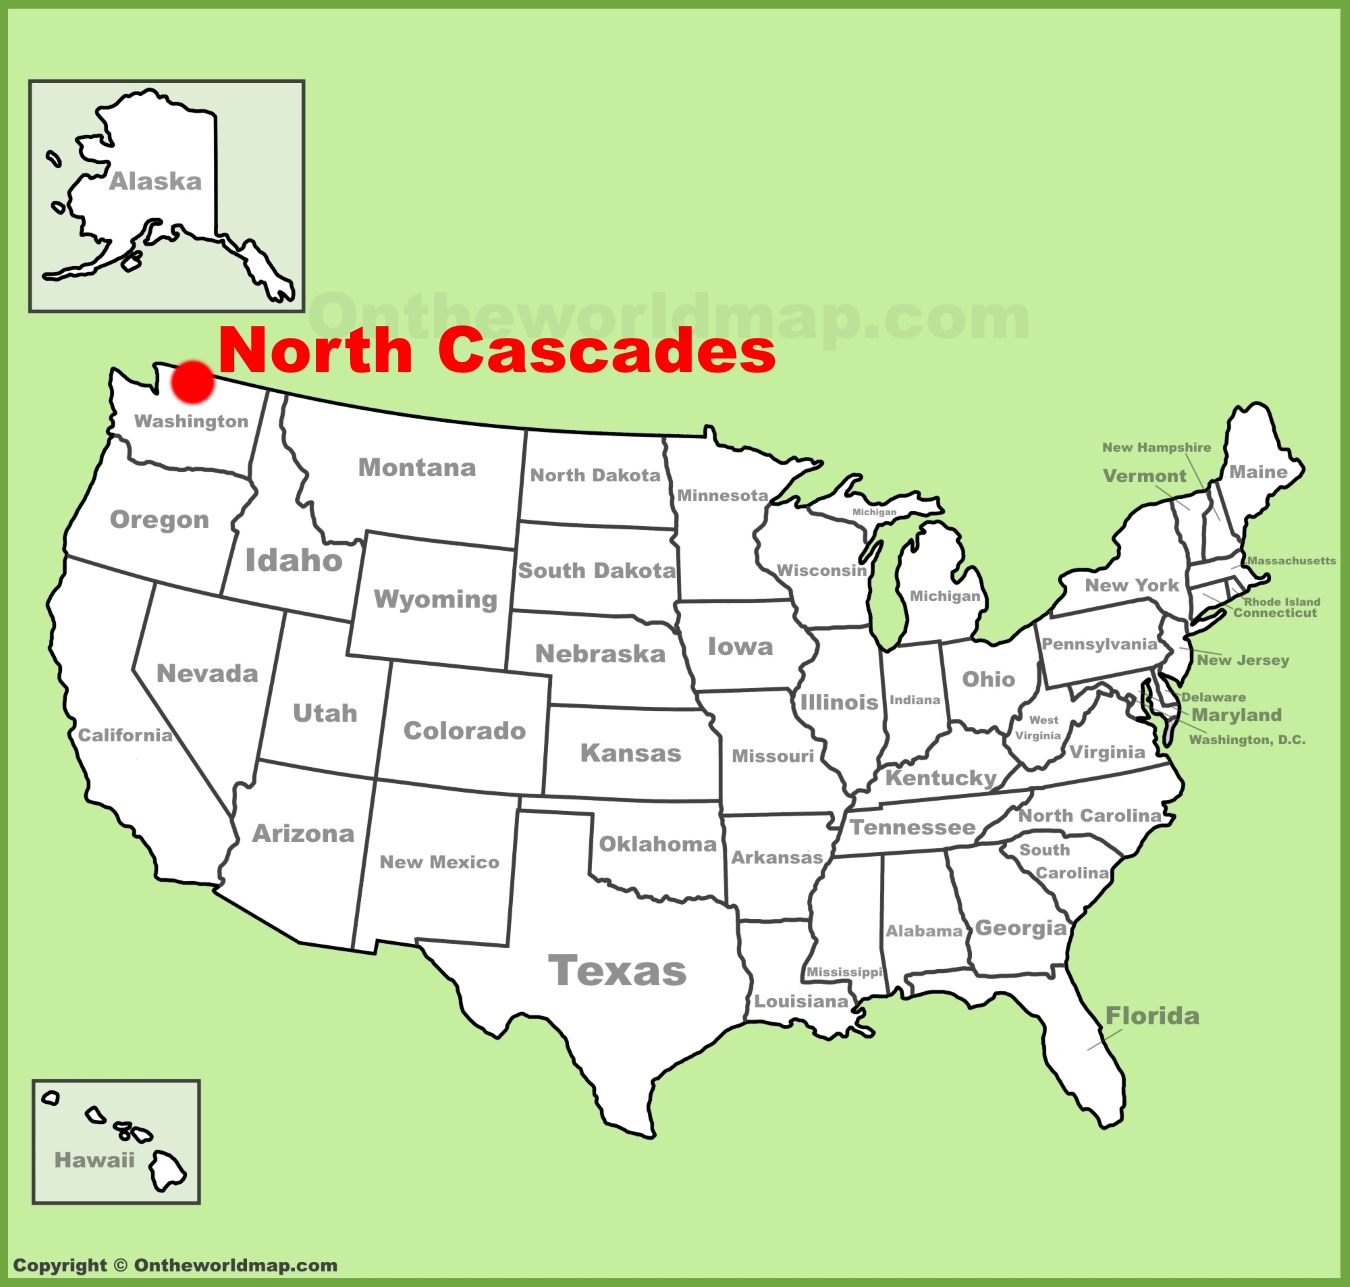 North Cascades location on the US Map